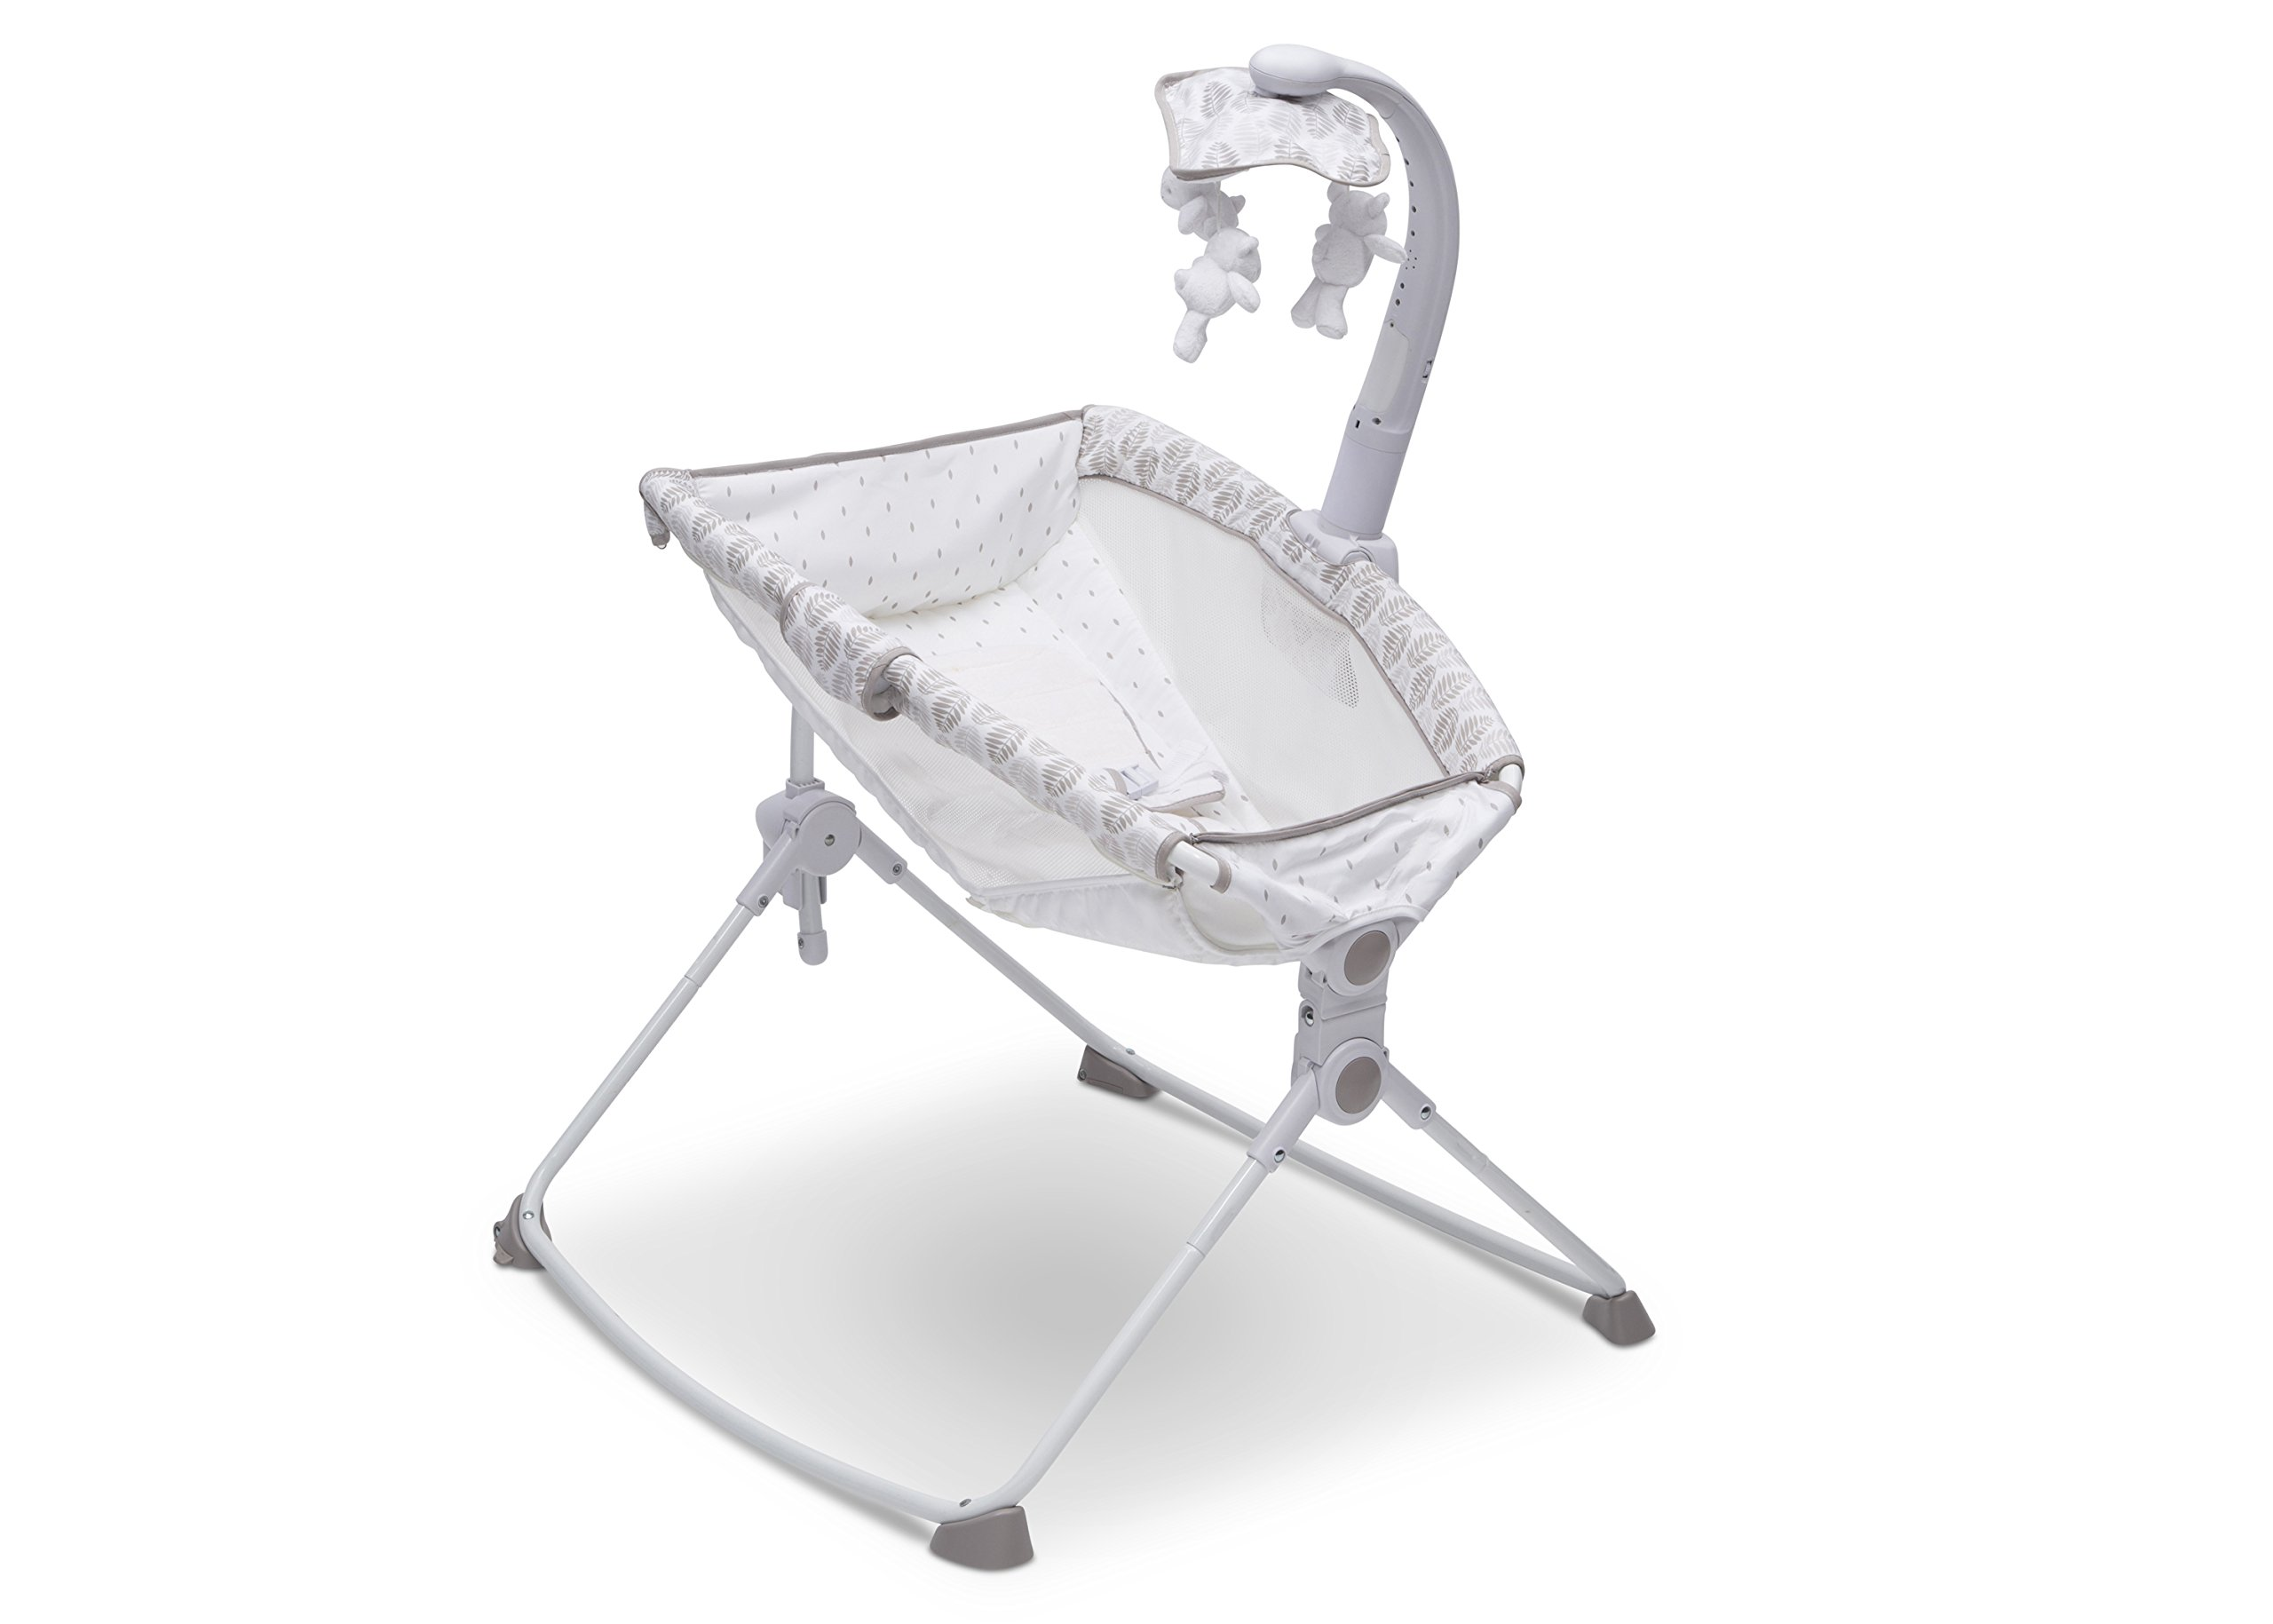 Simmons Kids Deluxe 3-in-1 Activity Rocker, Feeder and Incline Sleeper for Newborns, Pom Meadow